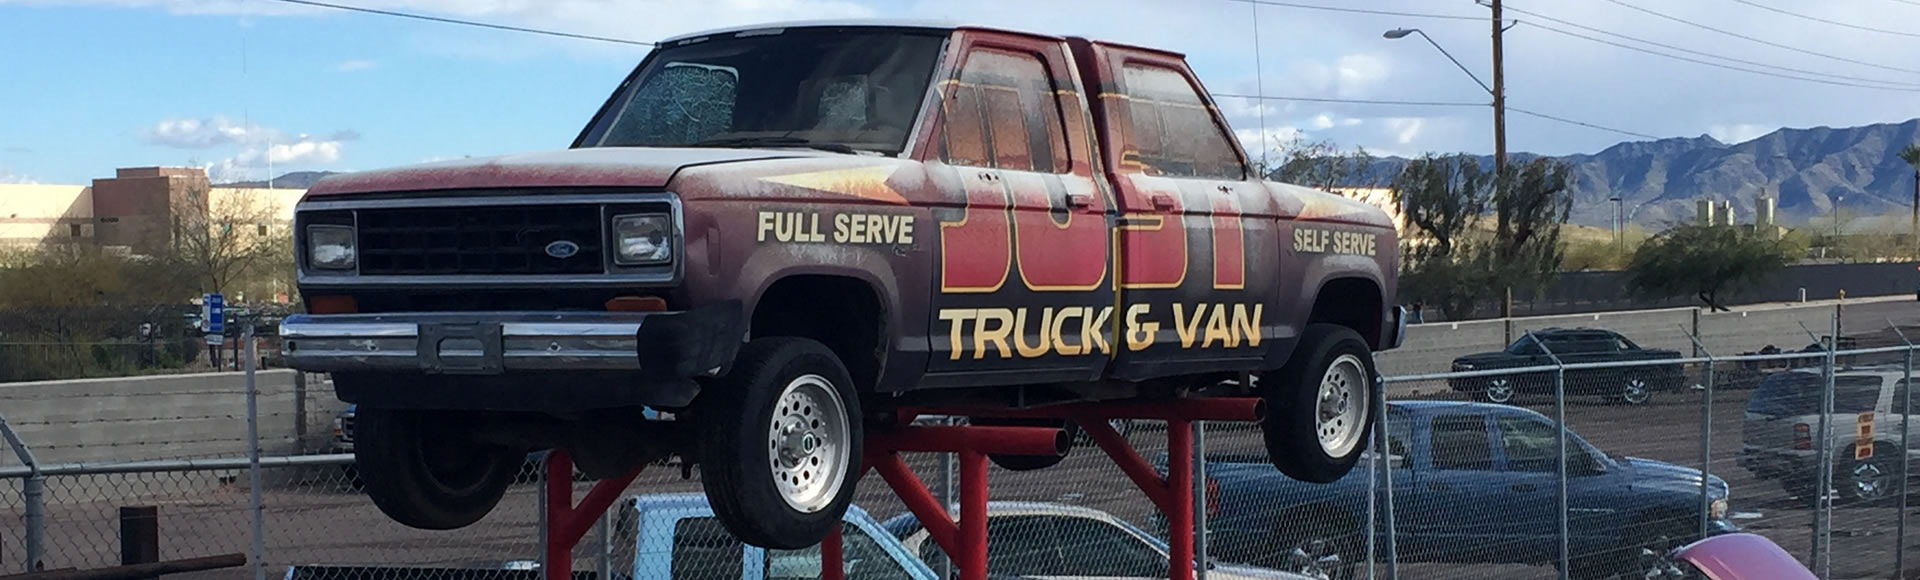 Used Truck Parts Phoenix - Just Truck and Van